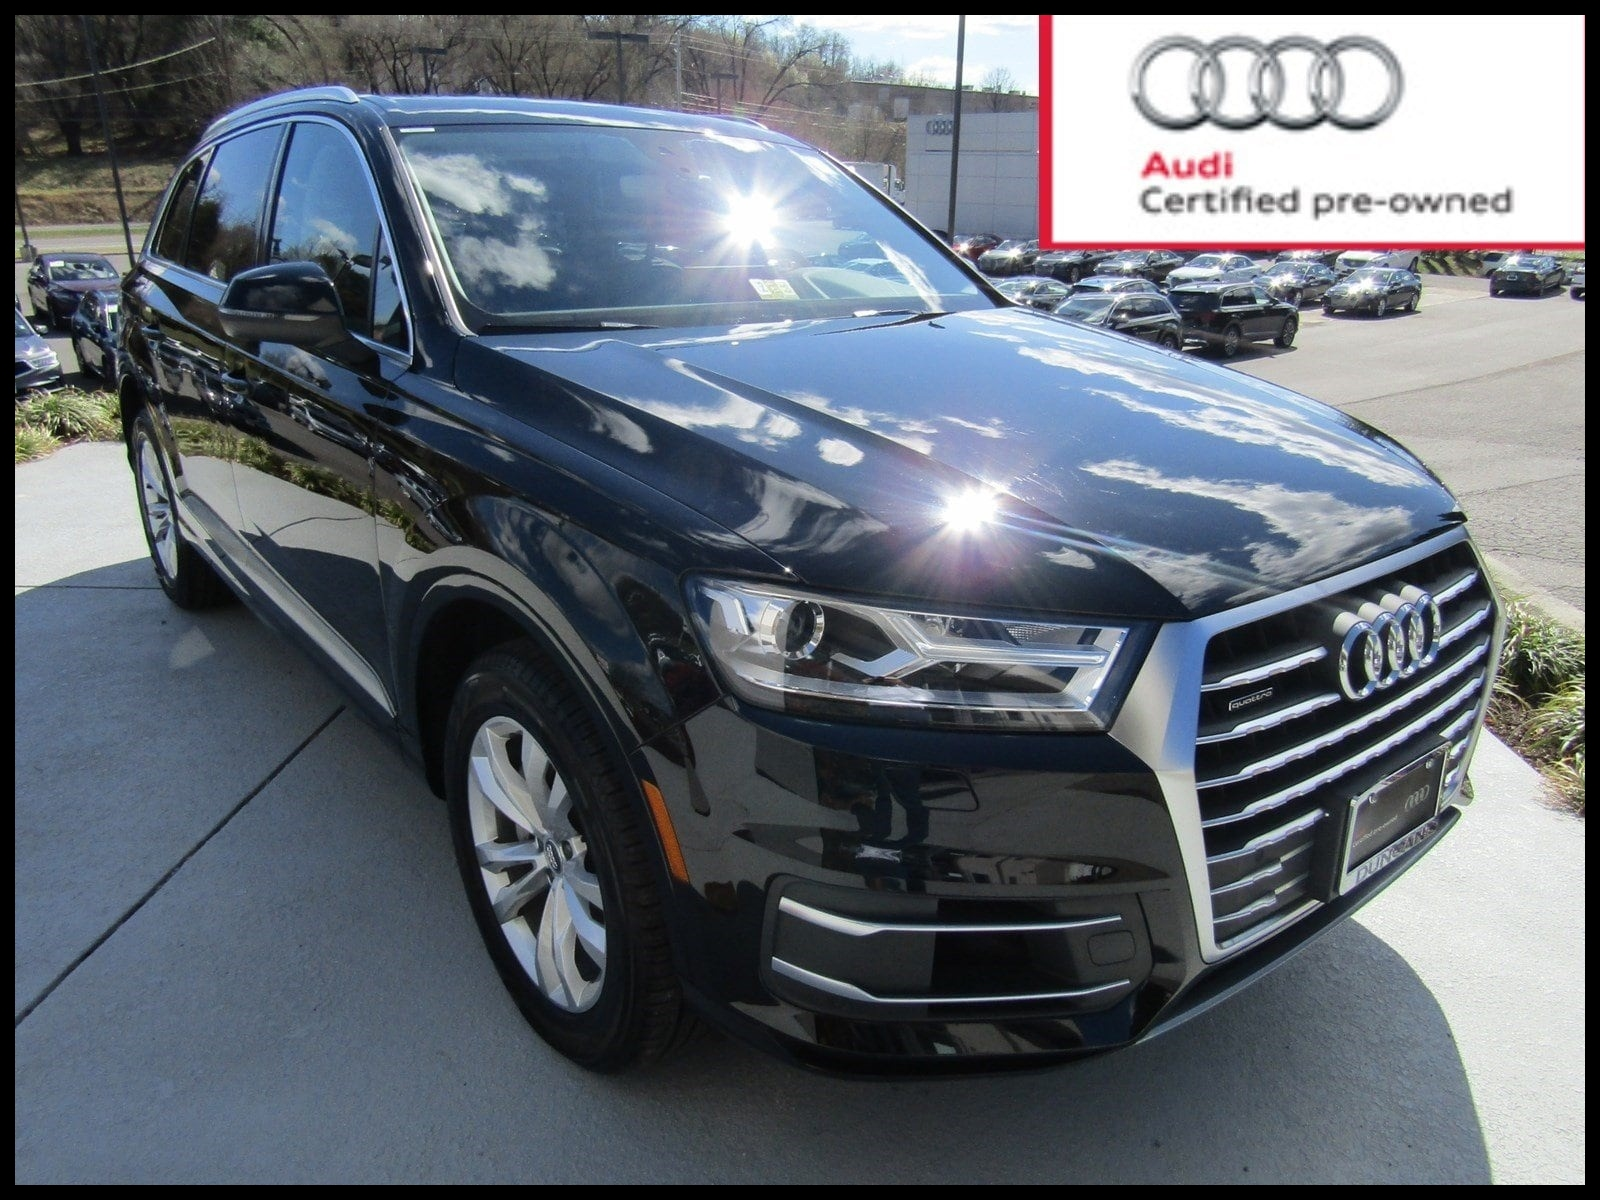 audi q7 certified pre owned source jaguarbellevue 88bbb9e4b599a218bf029a a536ex